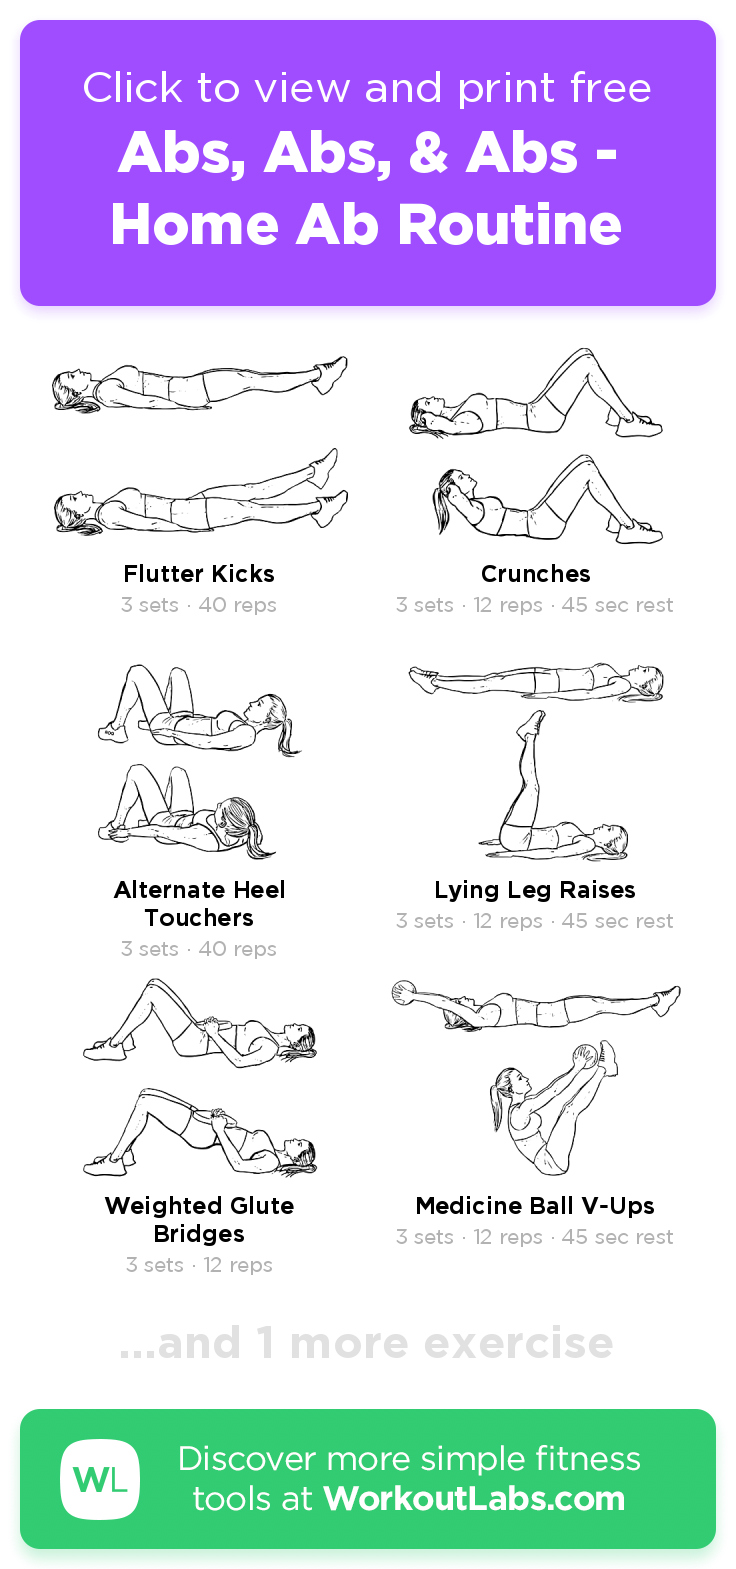 Abs, Abs, | Workout labs, At home abs, Leg and ab workout